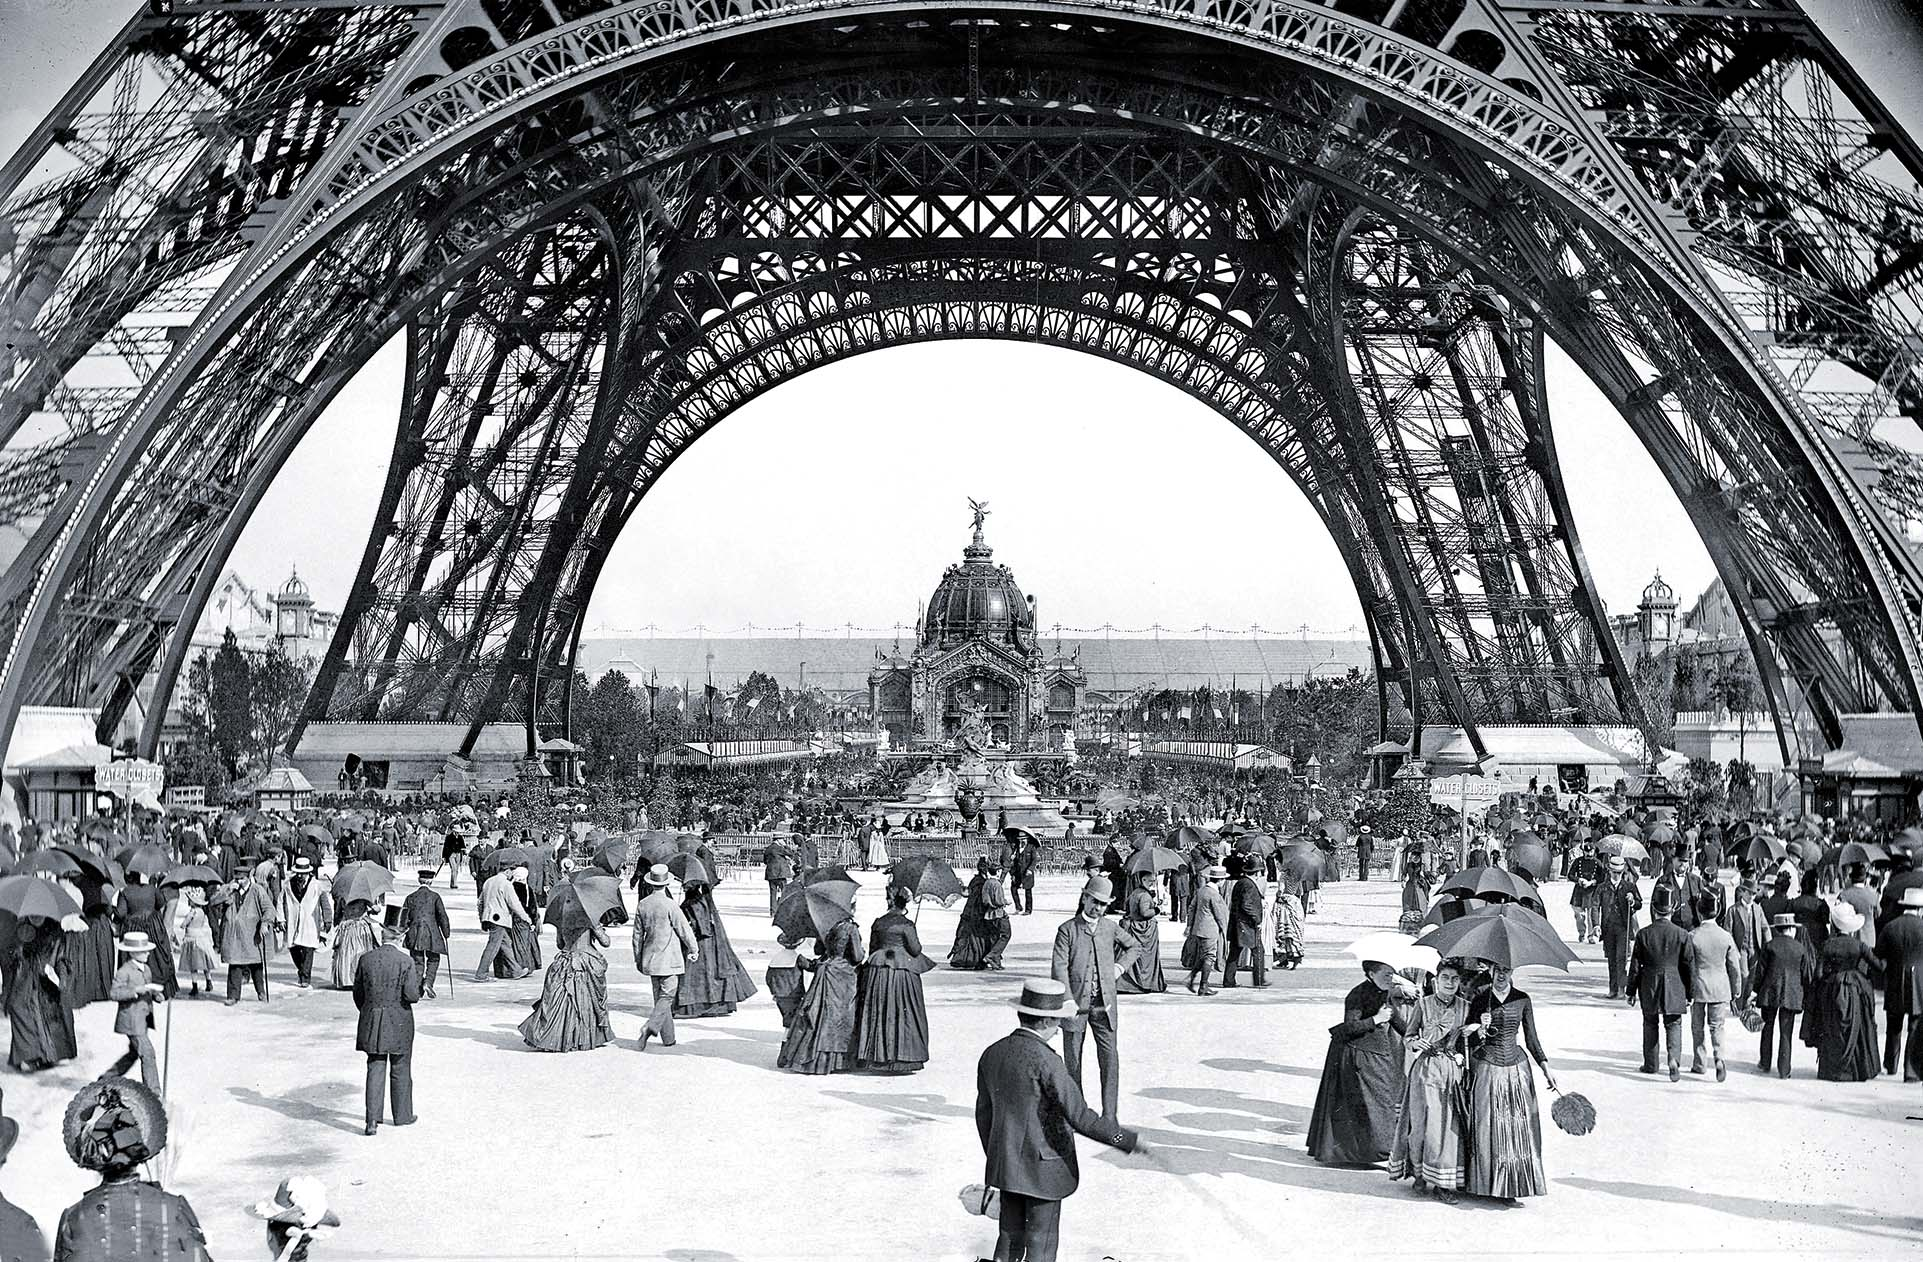 """In the decades following the collapse of the Commune Paris regained its status as the """"City of Light,"""" attracting American expats back to a rebuilt capital graced by Gustave Eiffel's tower. / Getty Images"""